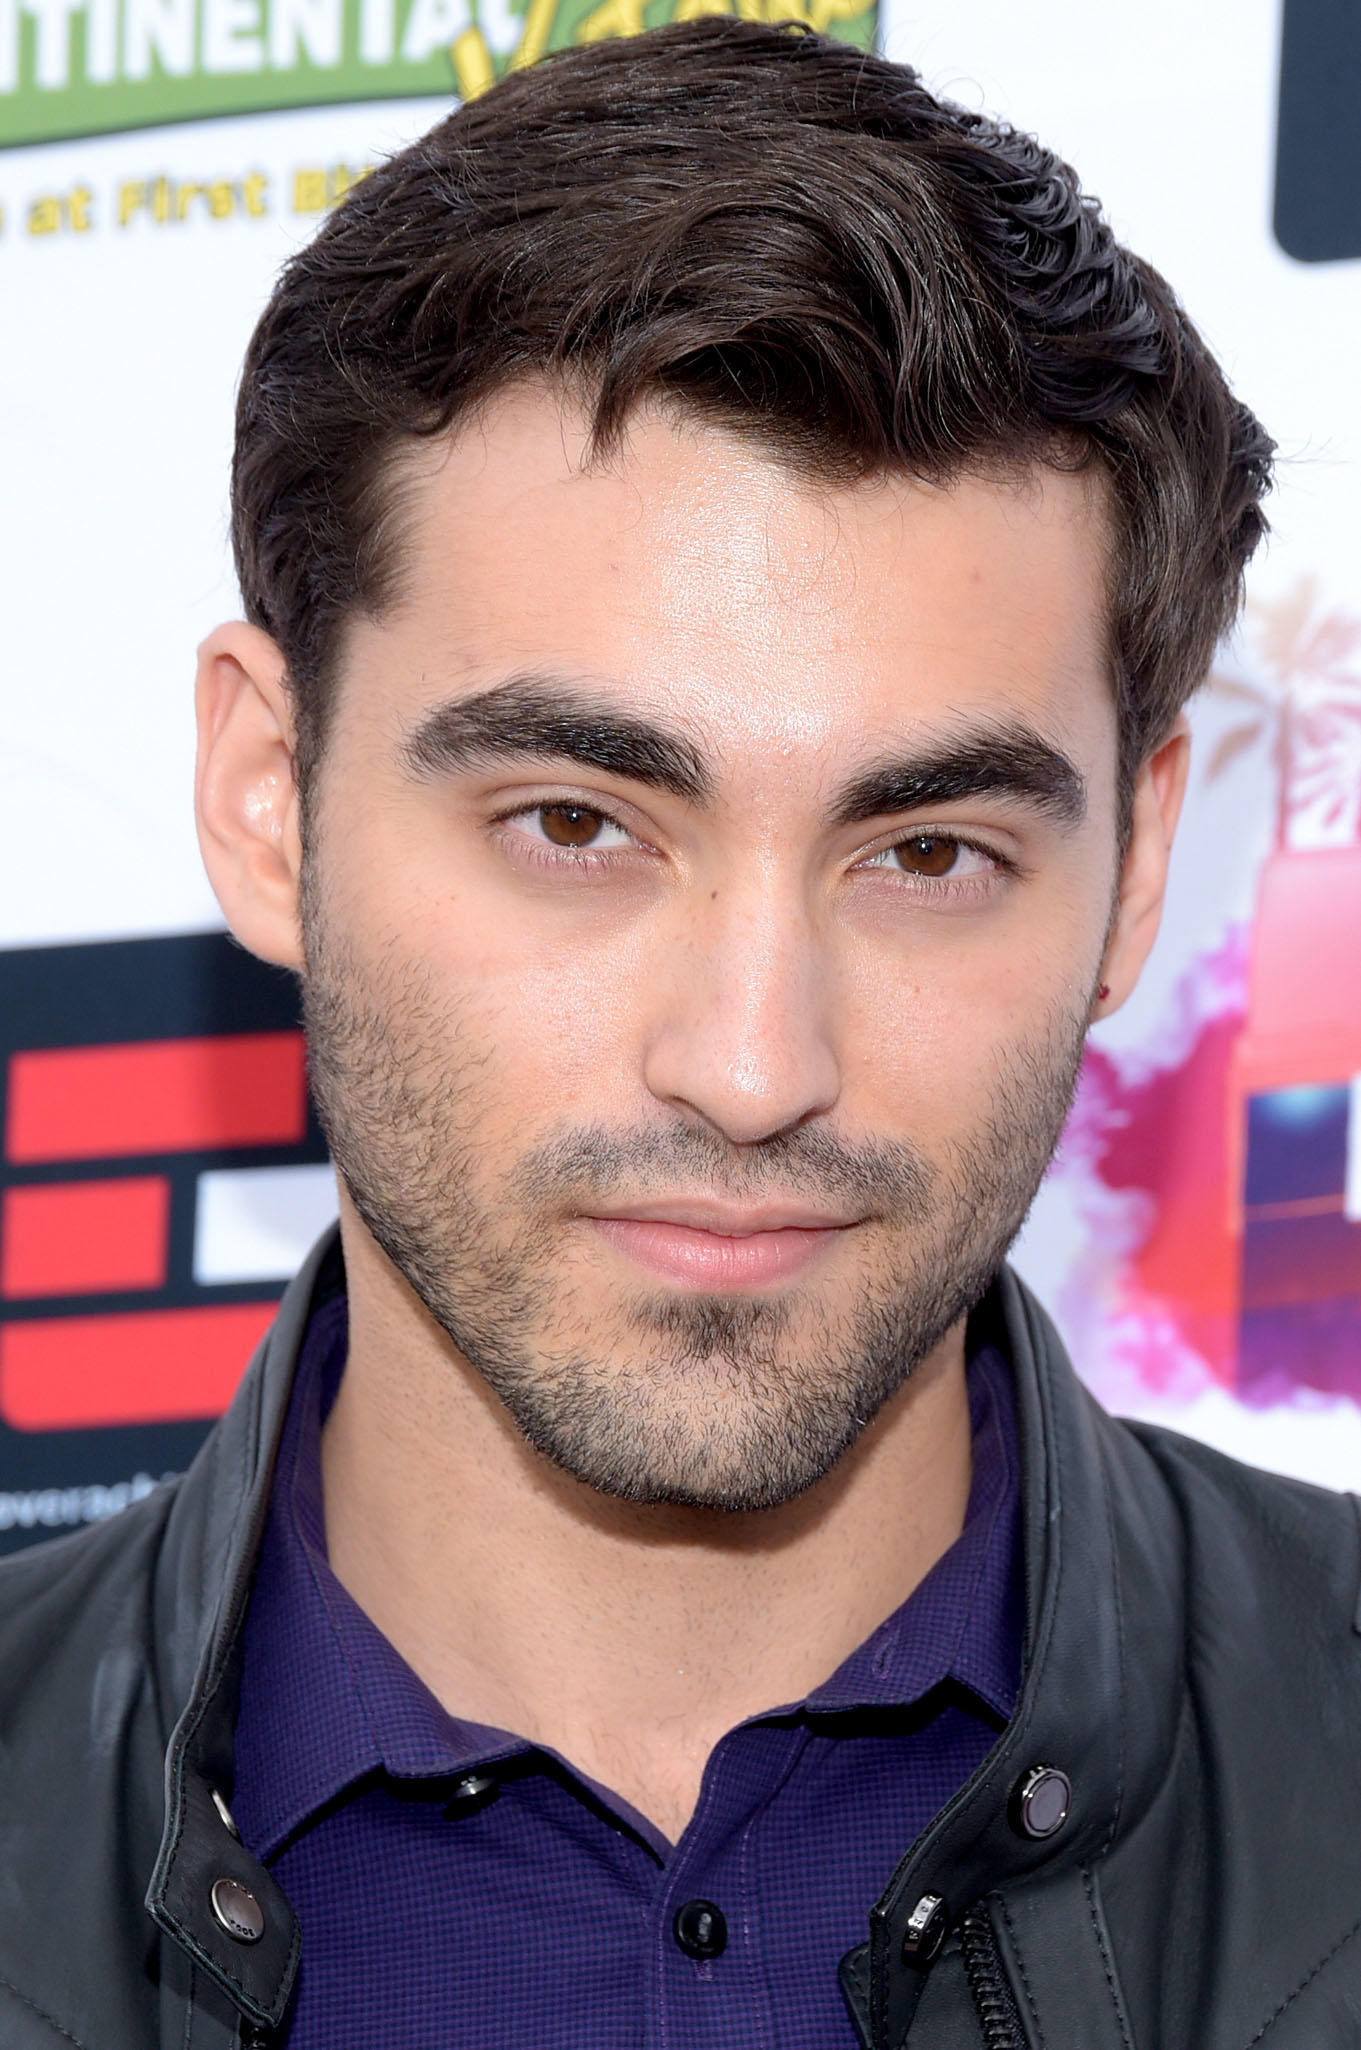 Blake Michael at the premiere of